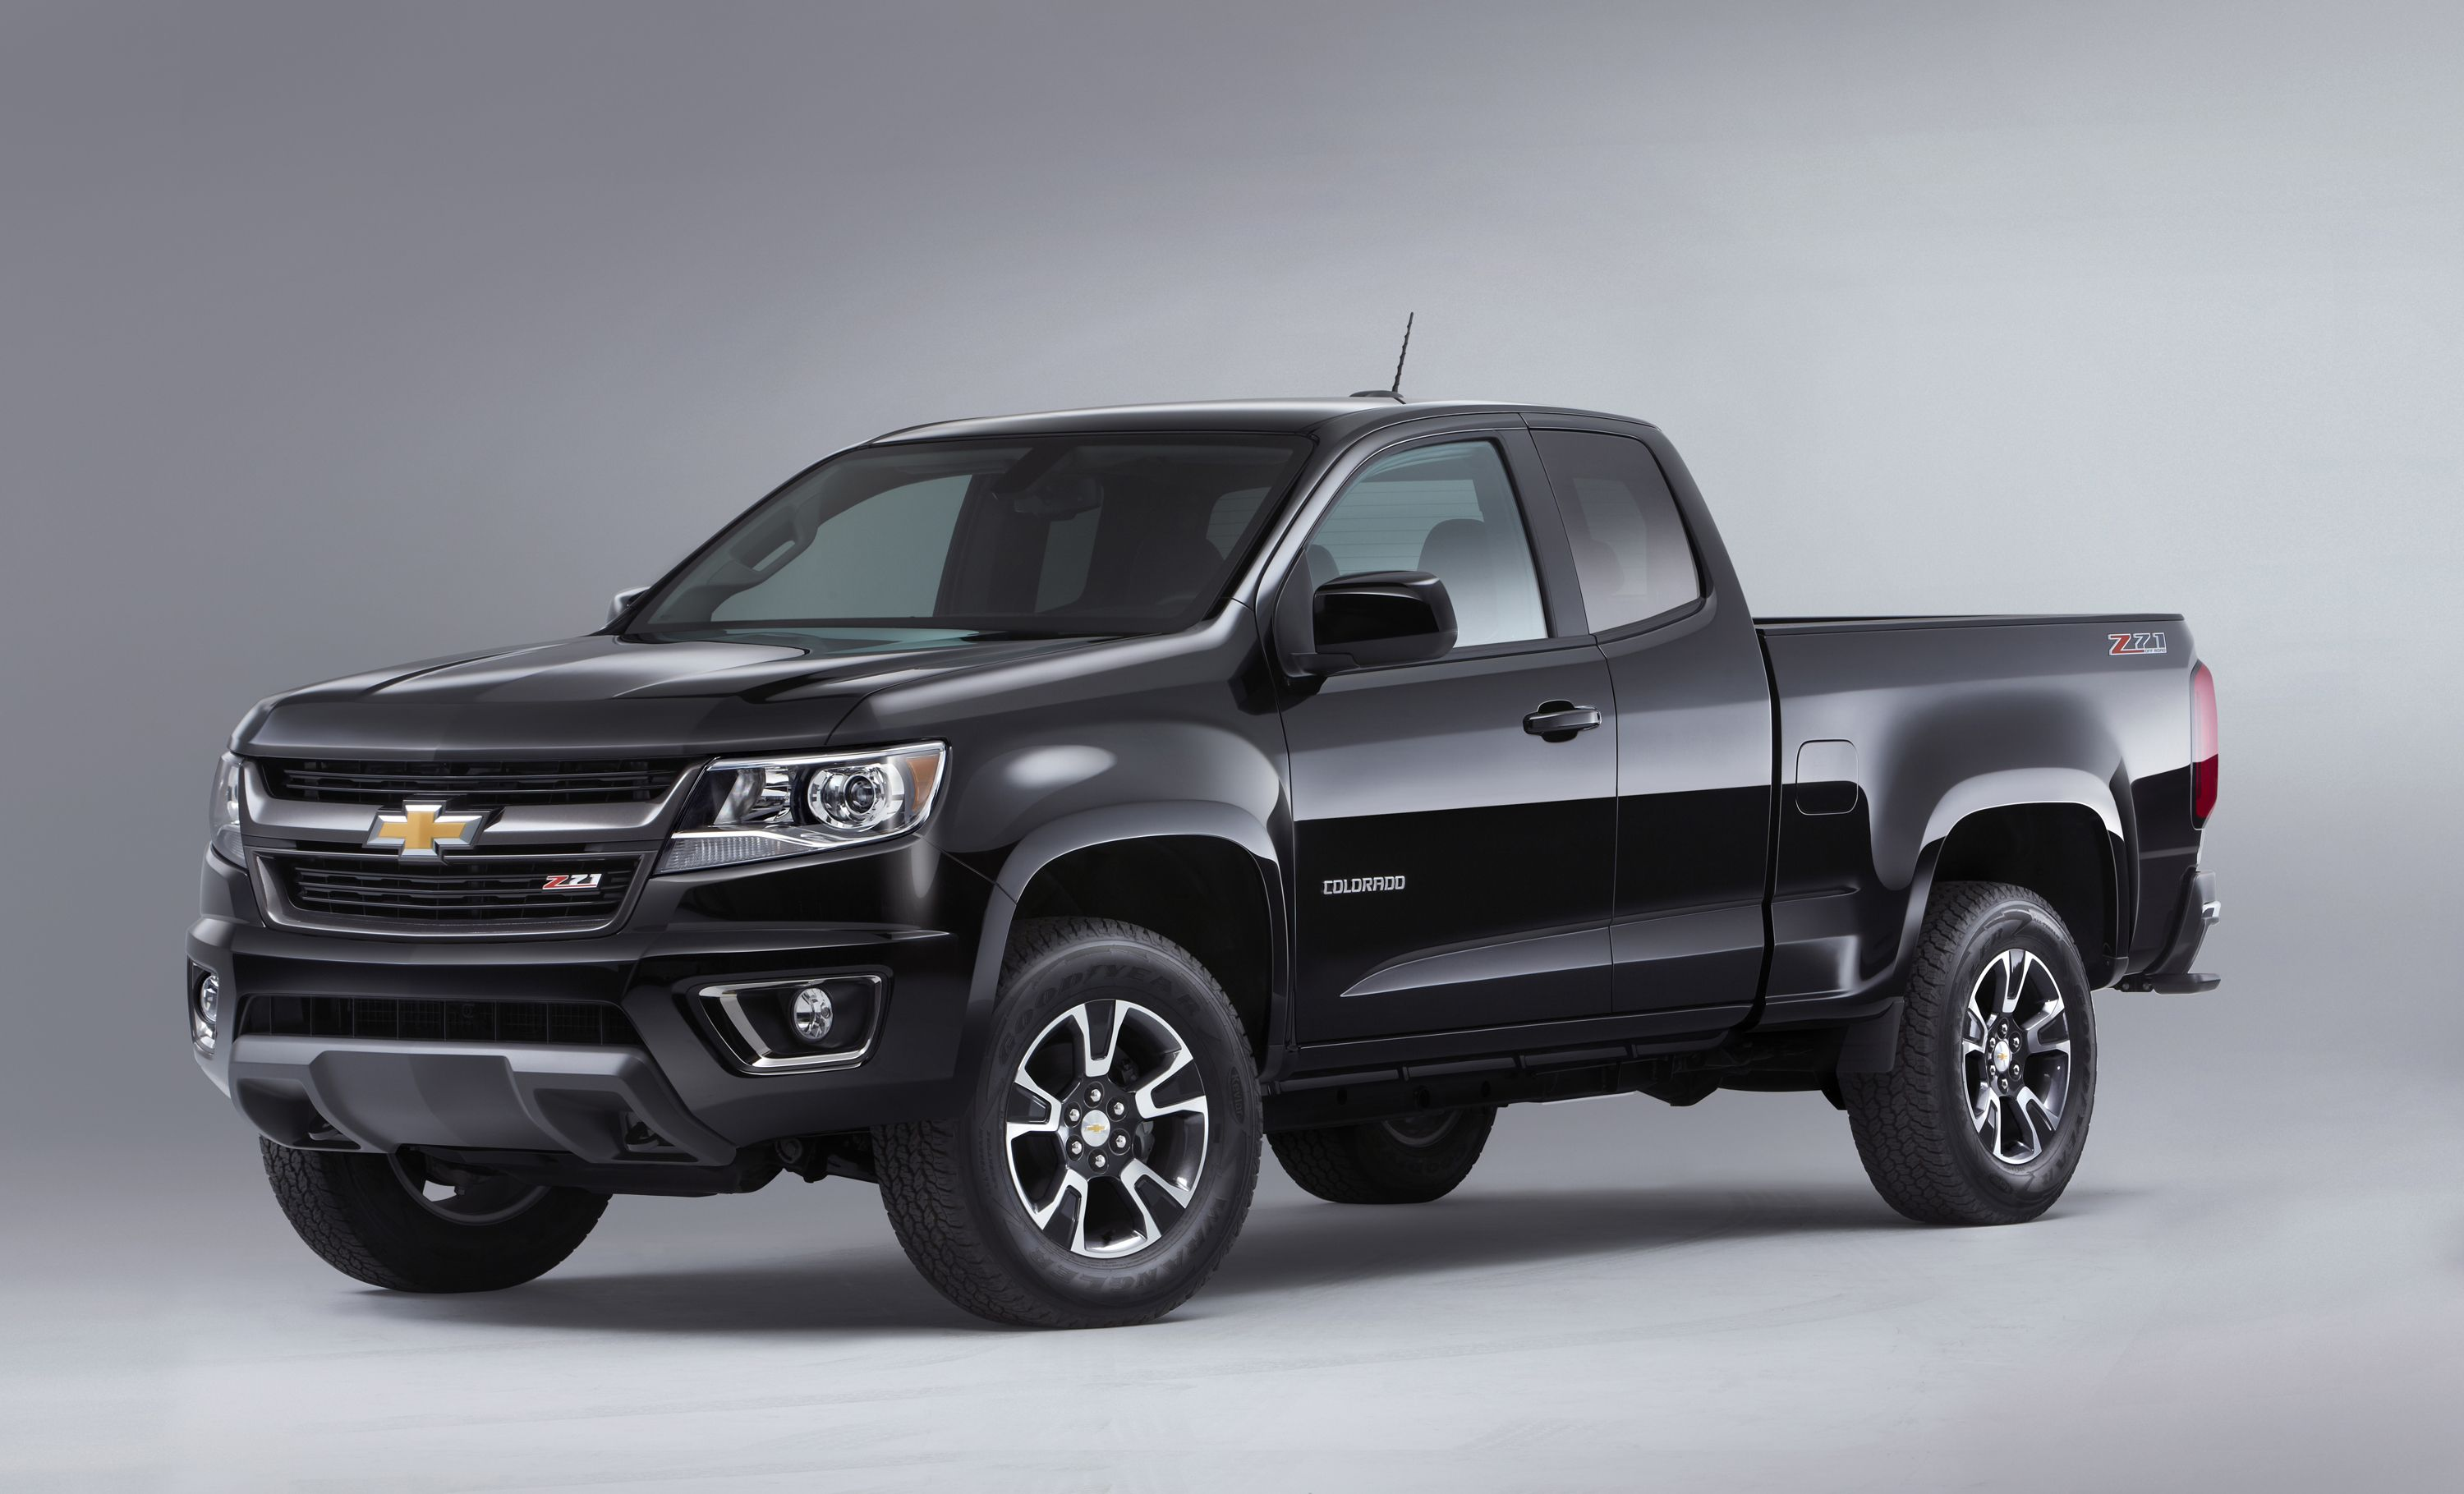 Image Result For 2 Door Black Chevy Colorado Chevrolet Colorado Chevrolet Colorado Z71 Chevy Colorado